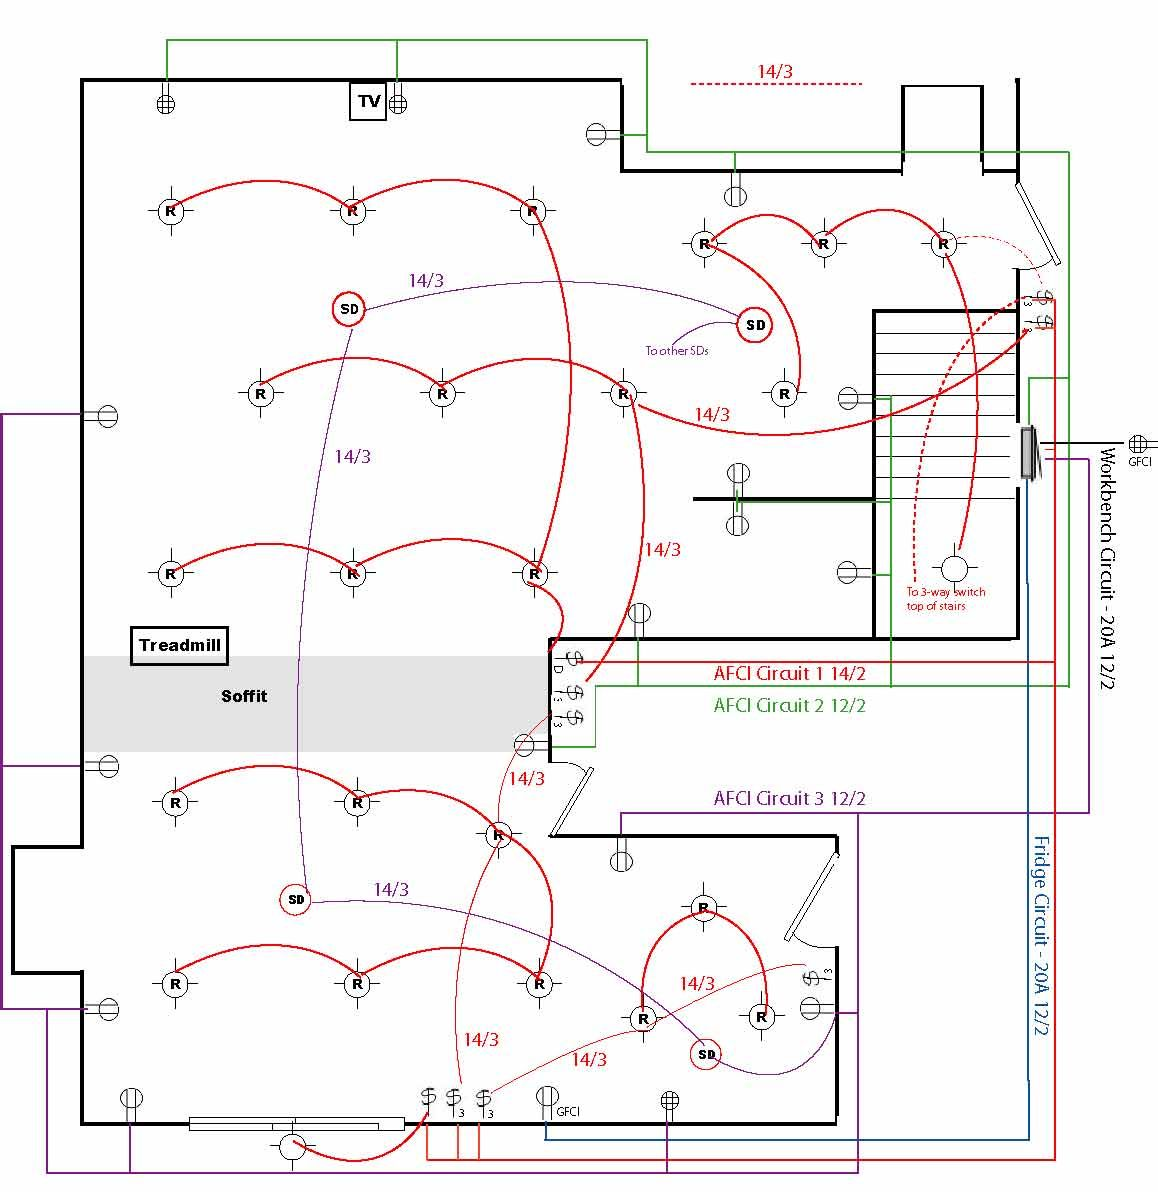 Pin By Joseph Sochalski On HOMES DIAGRAMS Pinterest